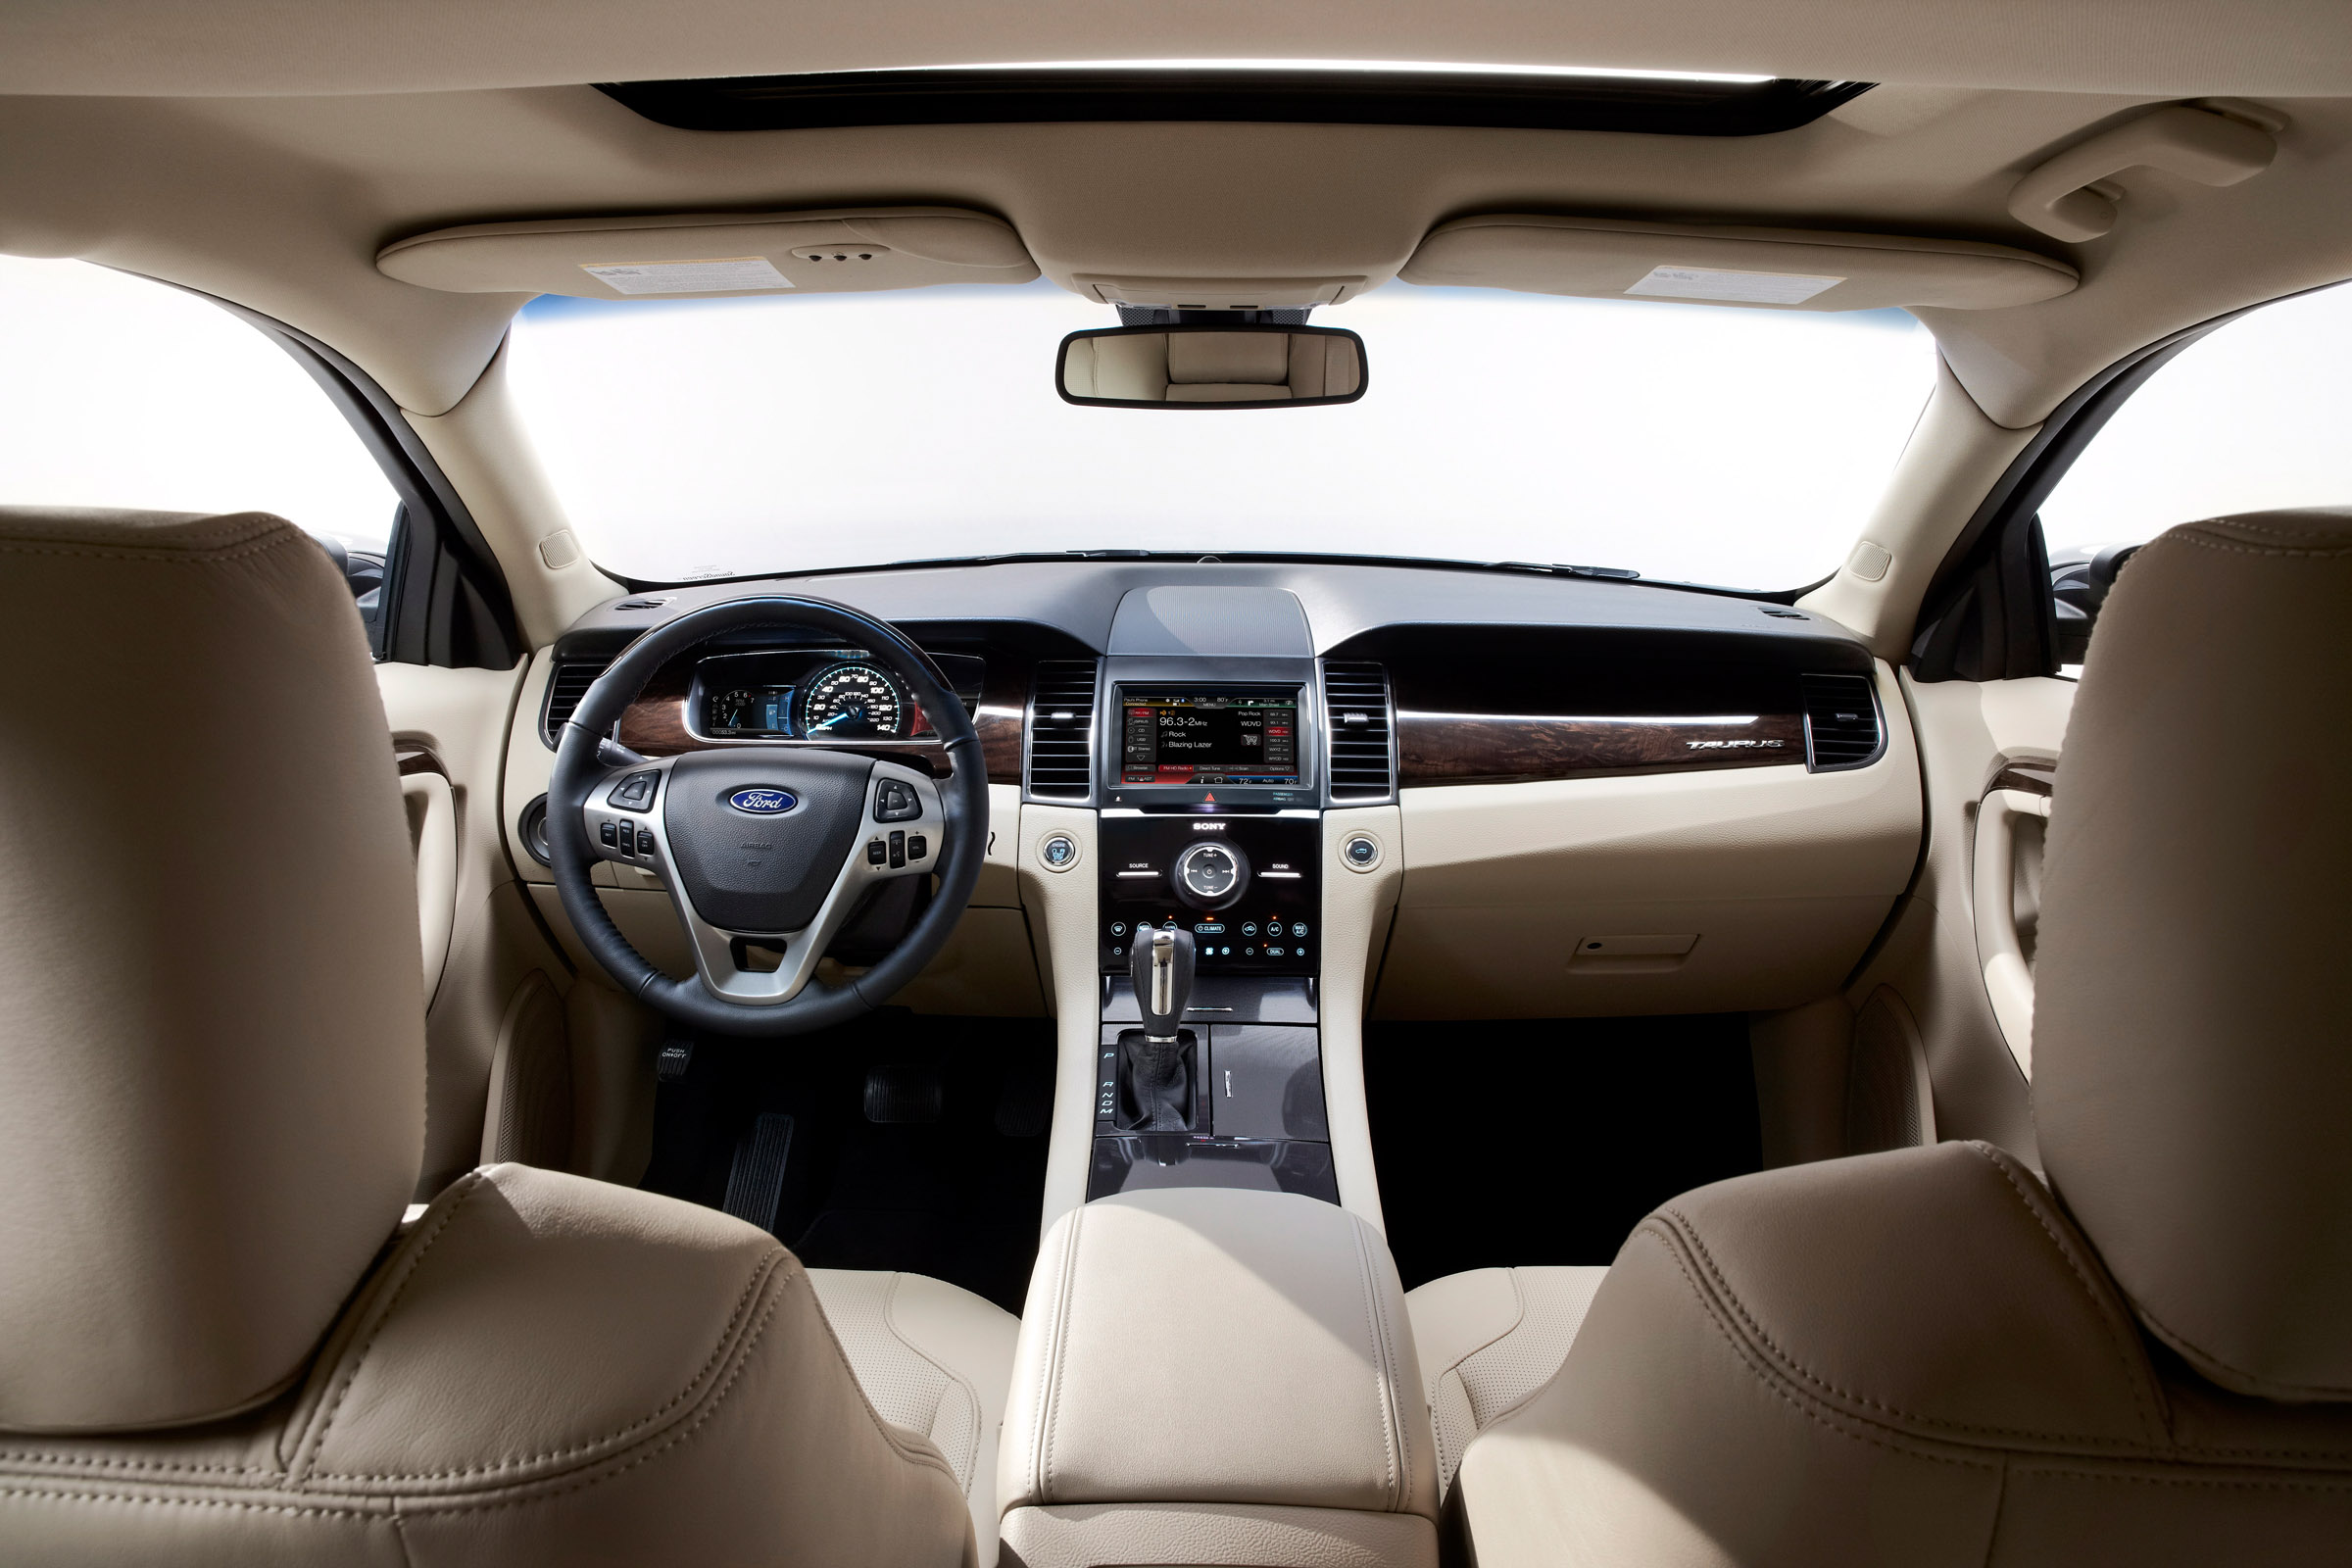 Ford Taurus Review - Research New & Used Ford. - Edmunds Ford taurus interior photos